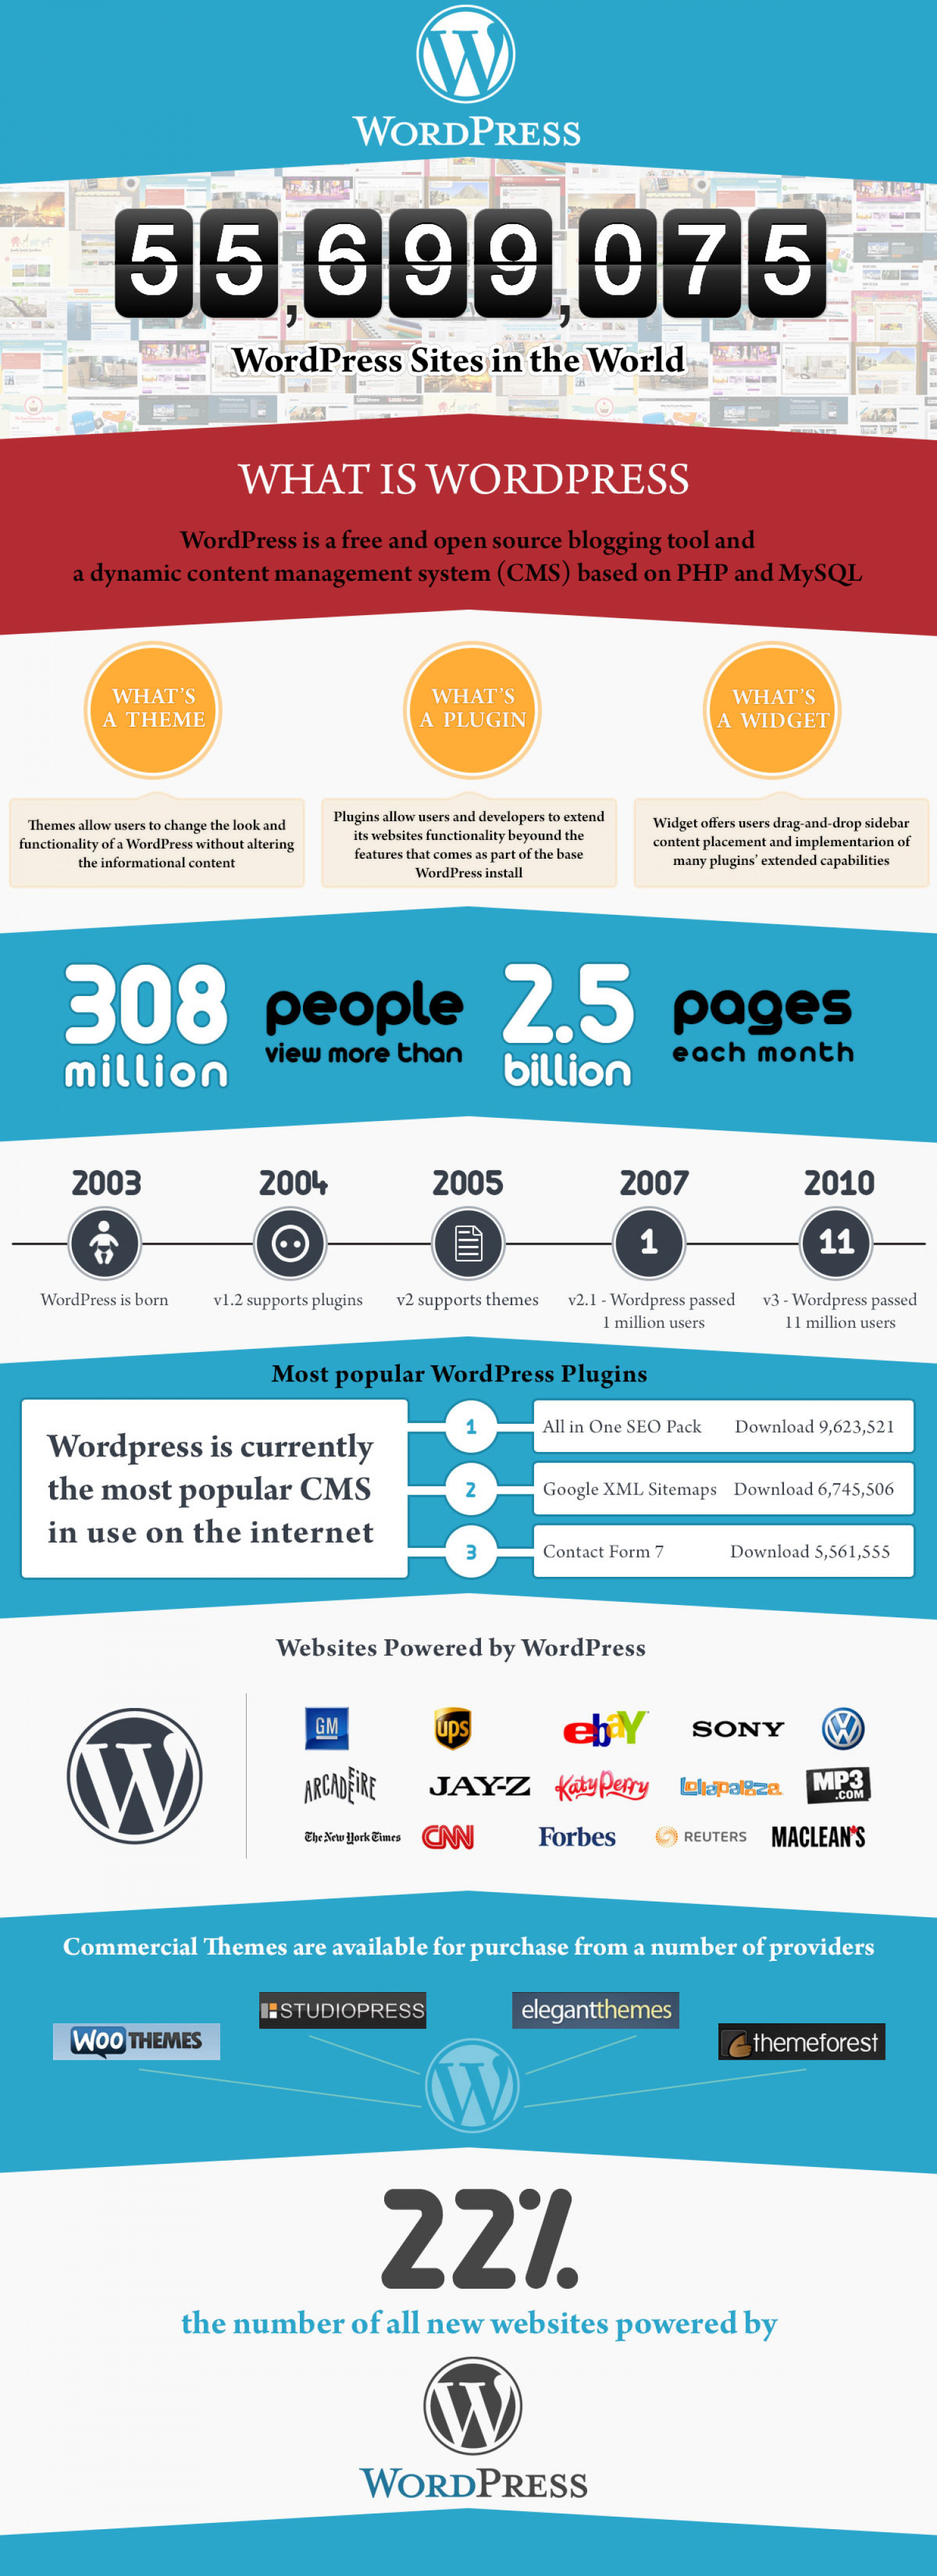 WordPress Sites in The World Infographic